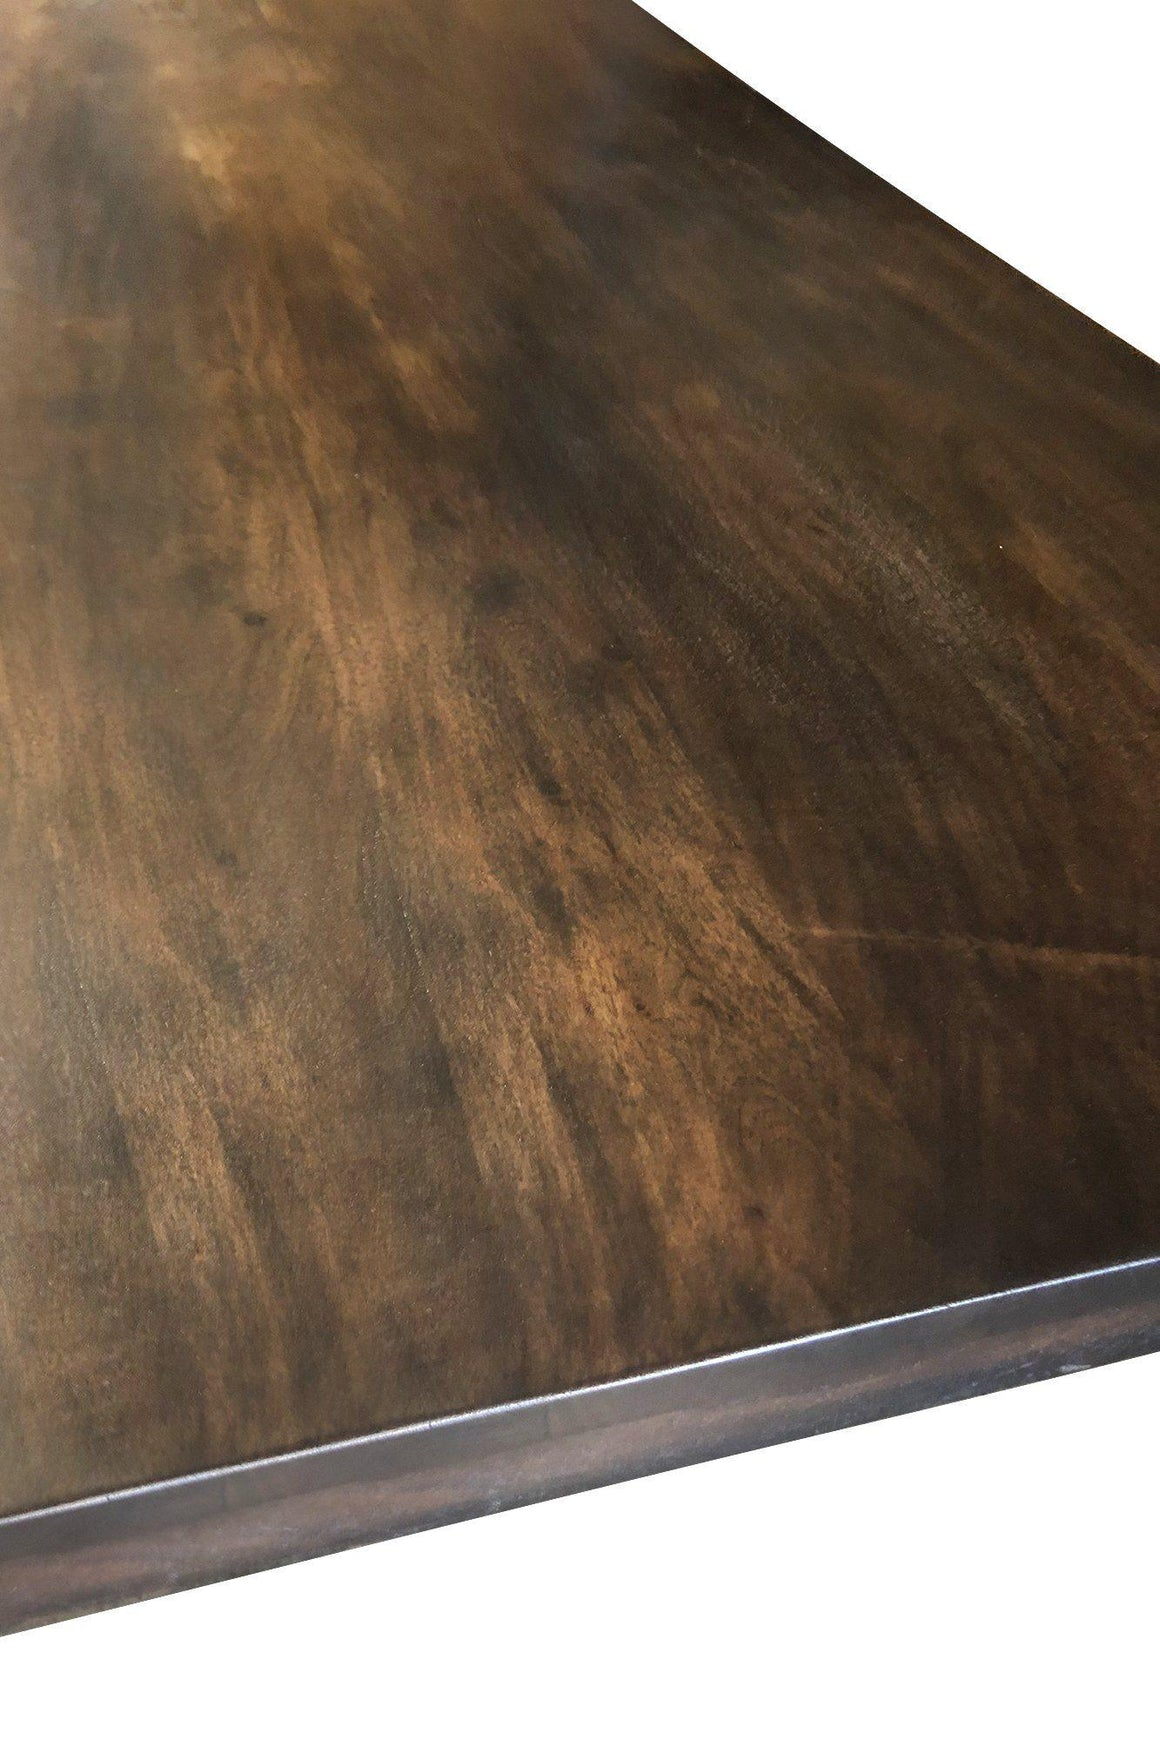 "Solid Acacia Wood Dining or Desk Top 80x40 2.25"" Steampunk Dark Stain-Rustic Deco Incorporated"